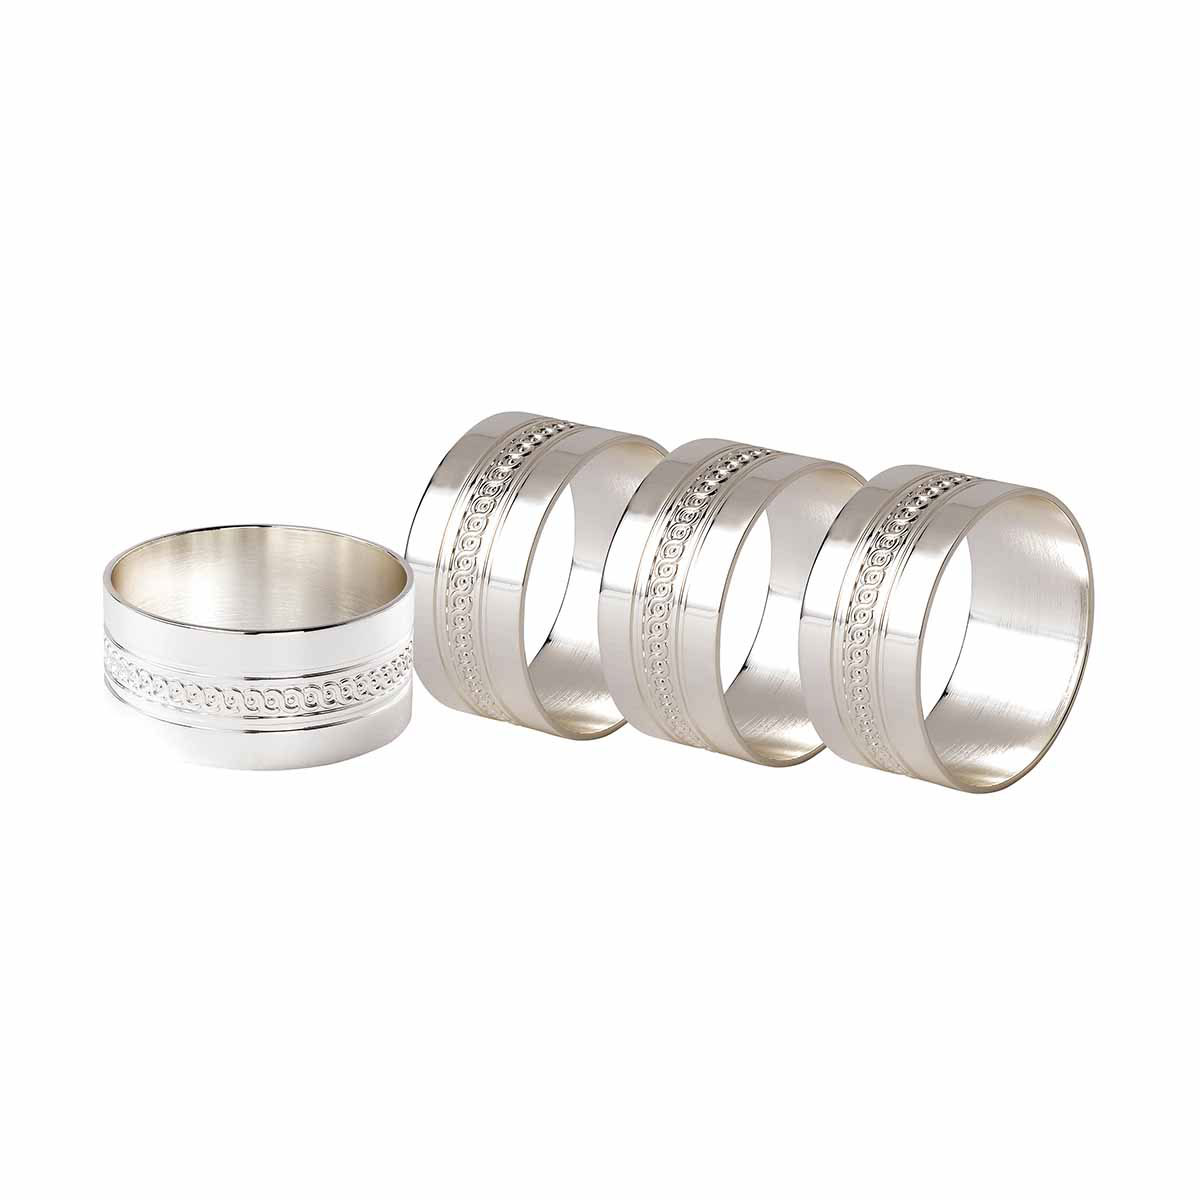 Wedgwood Silver, Simply Wish Napkin Ring, Set of 4